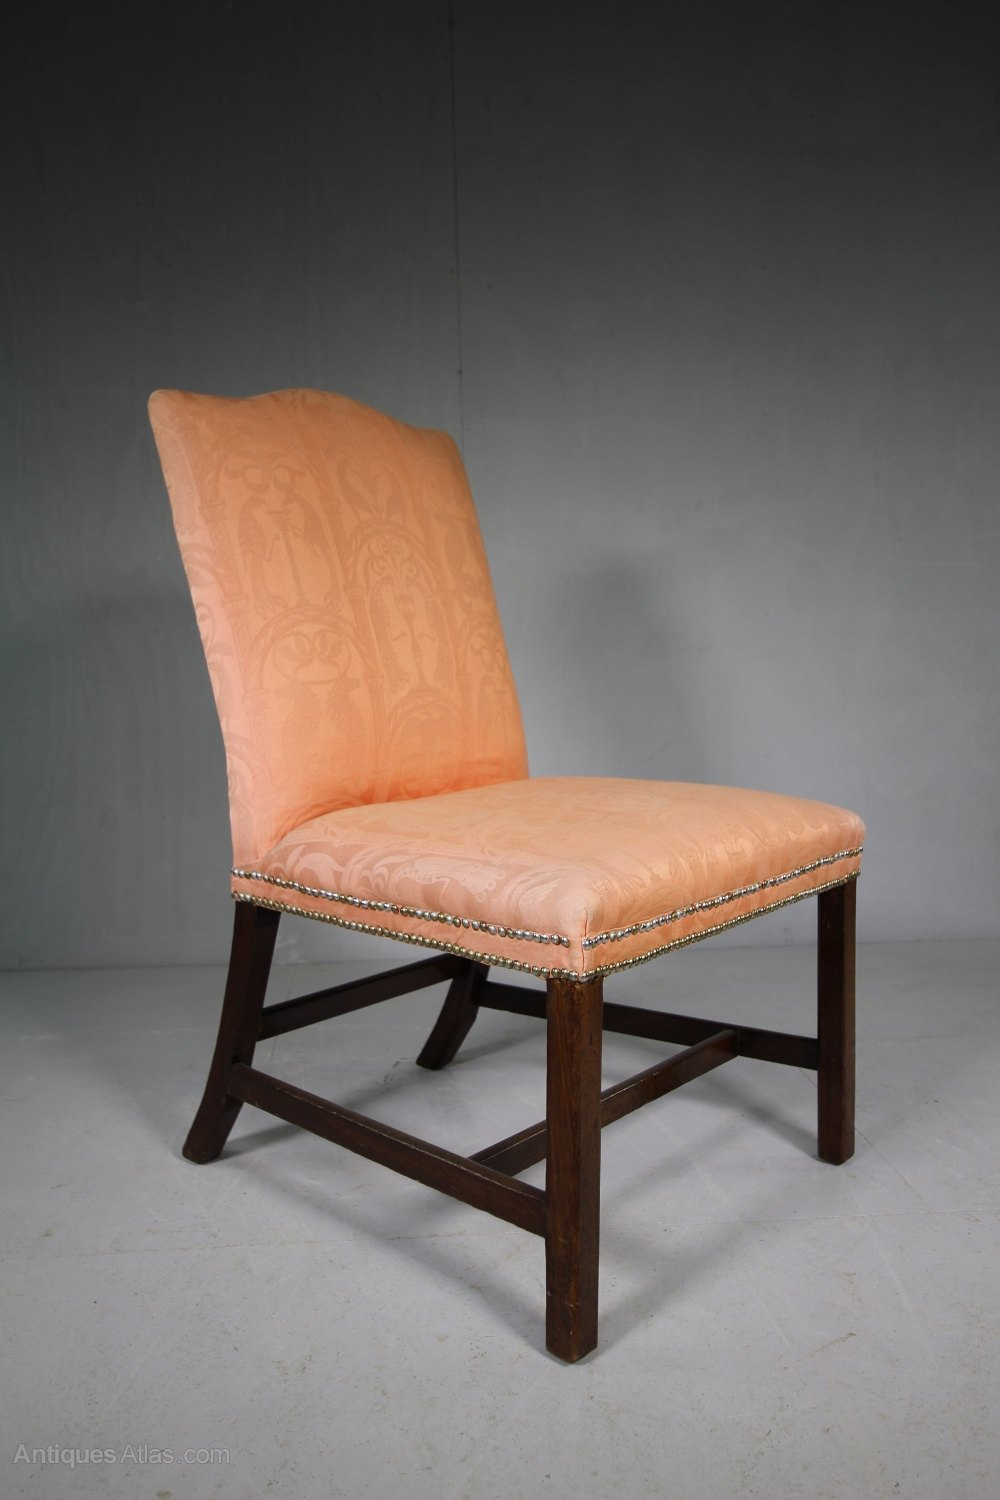 dining chairs upholstered costco table and georgian antique side chair. - antiques atlas